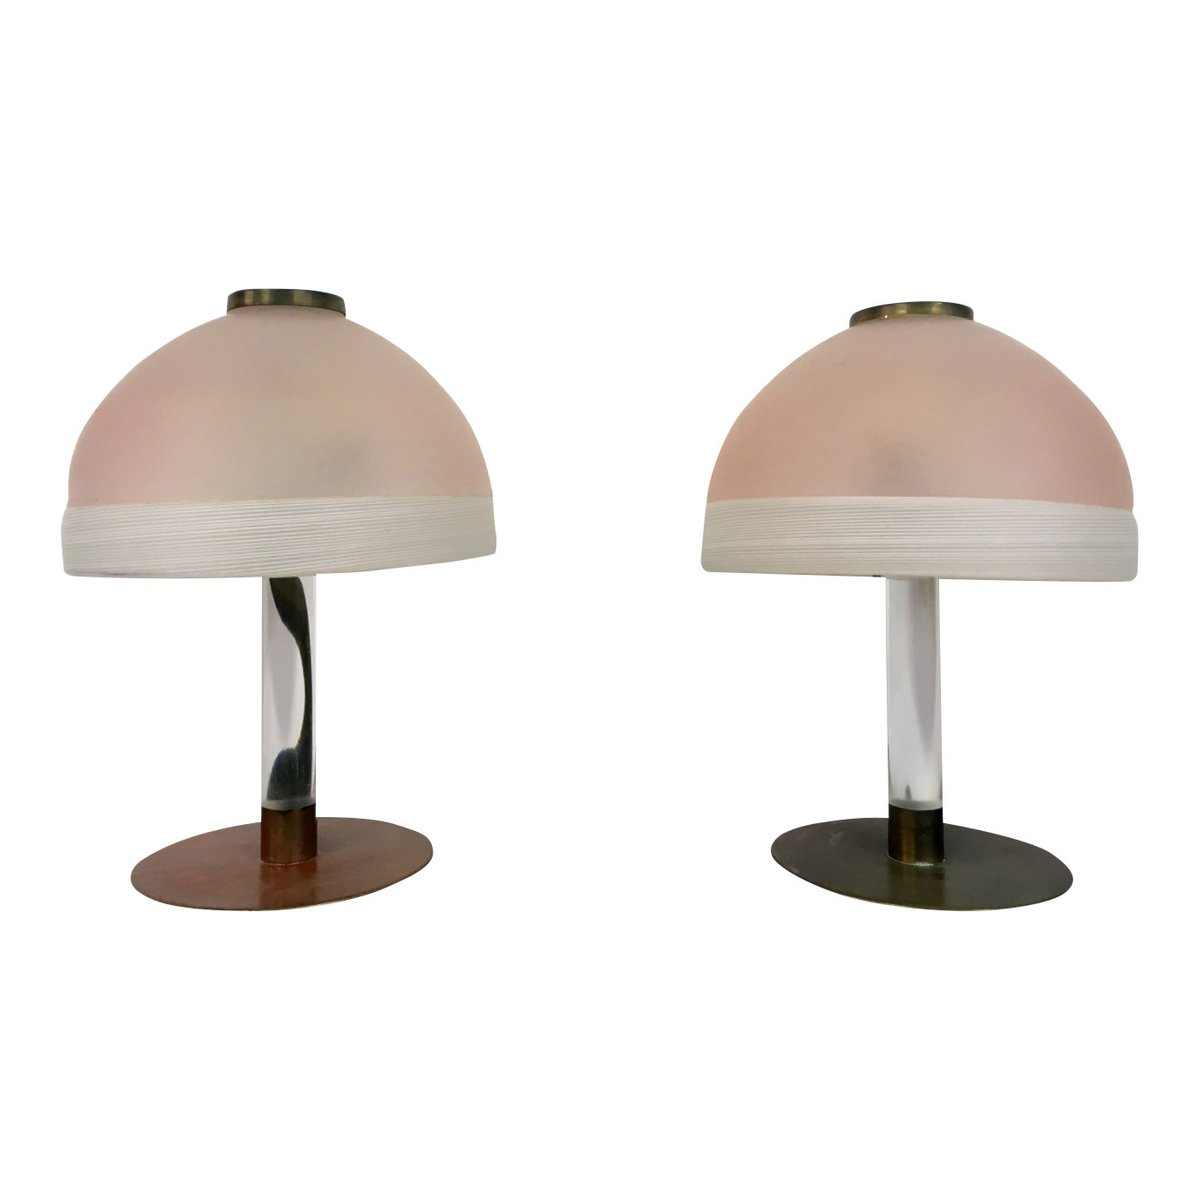 lampe de bureau en verre rose et lucite 1980s set de 2 en vente sur pamono. Black Bedroom Furniture Sets. Home Design Ideas